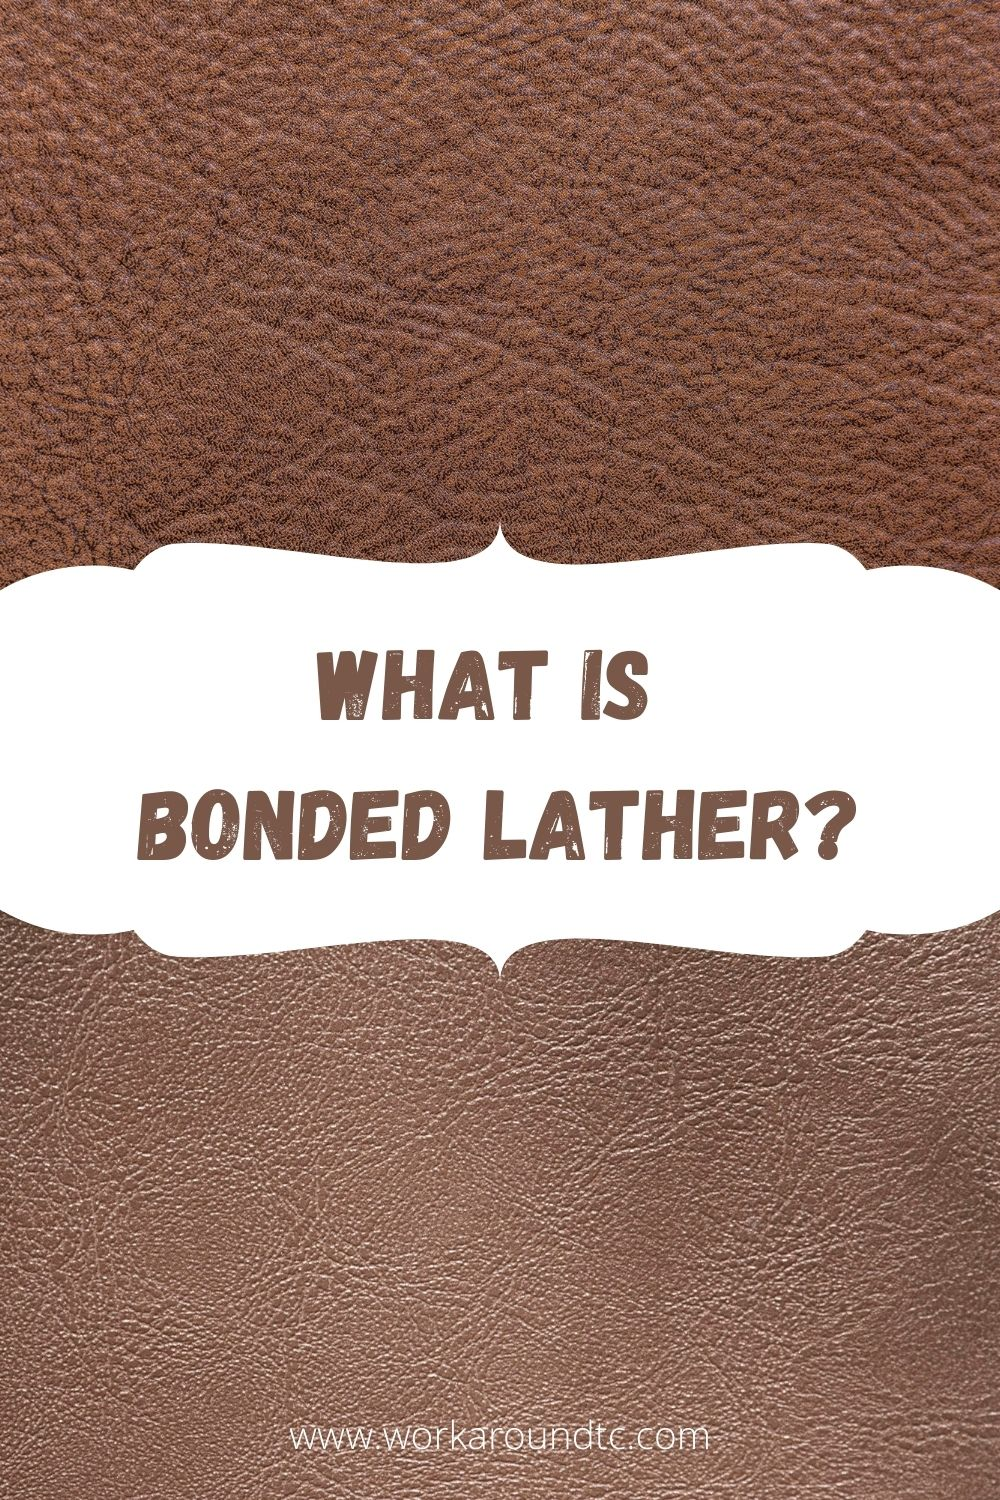 Is Bonded Leather Durable